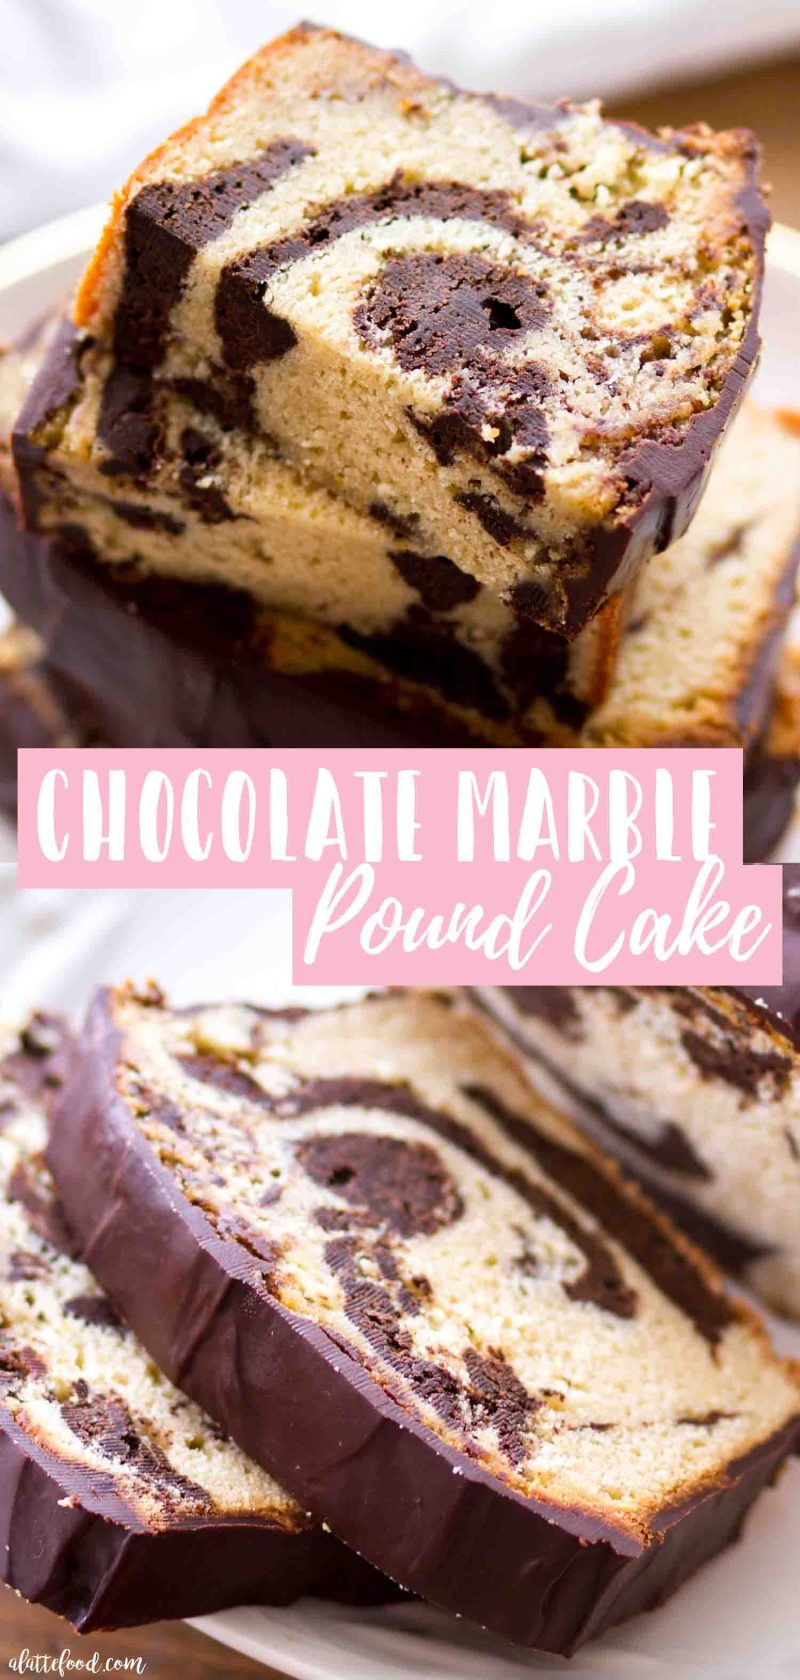 This easy vanilla chocolate marble pound cake recipe photo collage shows the gorgeous swirl of the vanilla pound cake and chocolate pound cake. The perfect spongy texture comes from making this pound cake with cream cheese and butter.